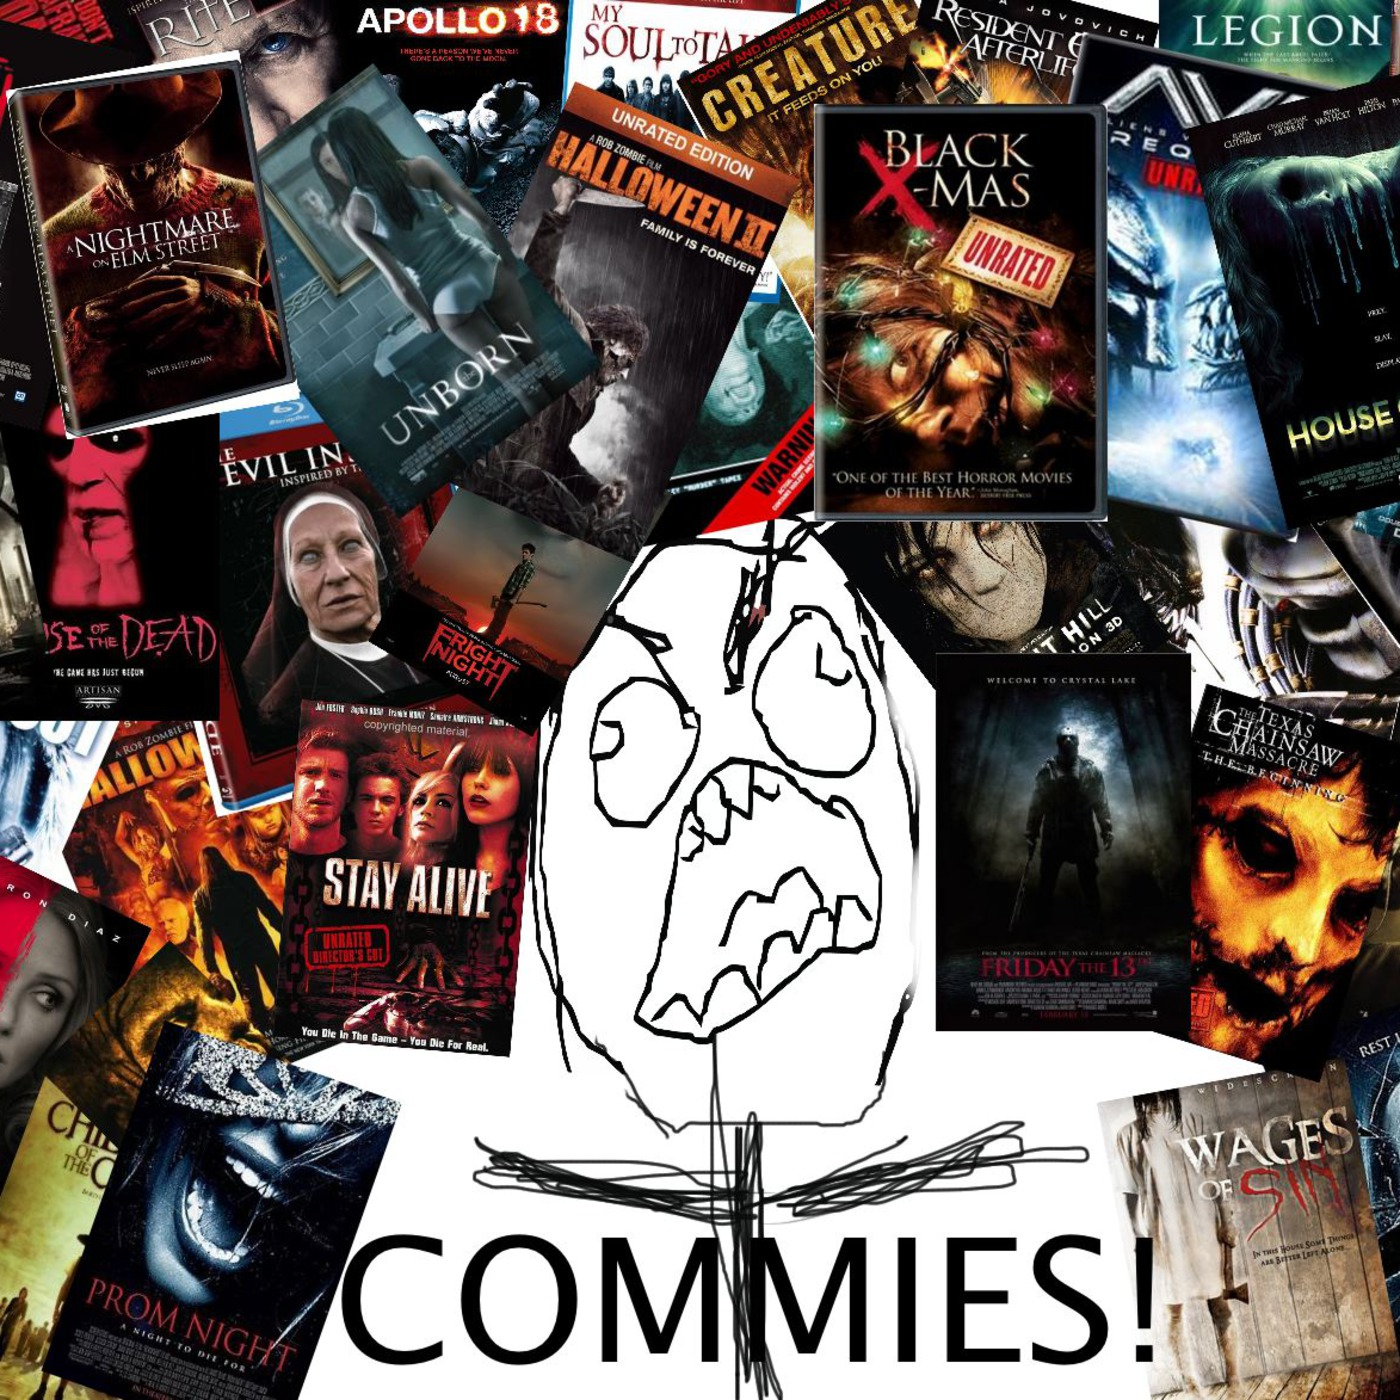 Commies: A Podcast commentary for Horror DVD's